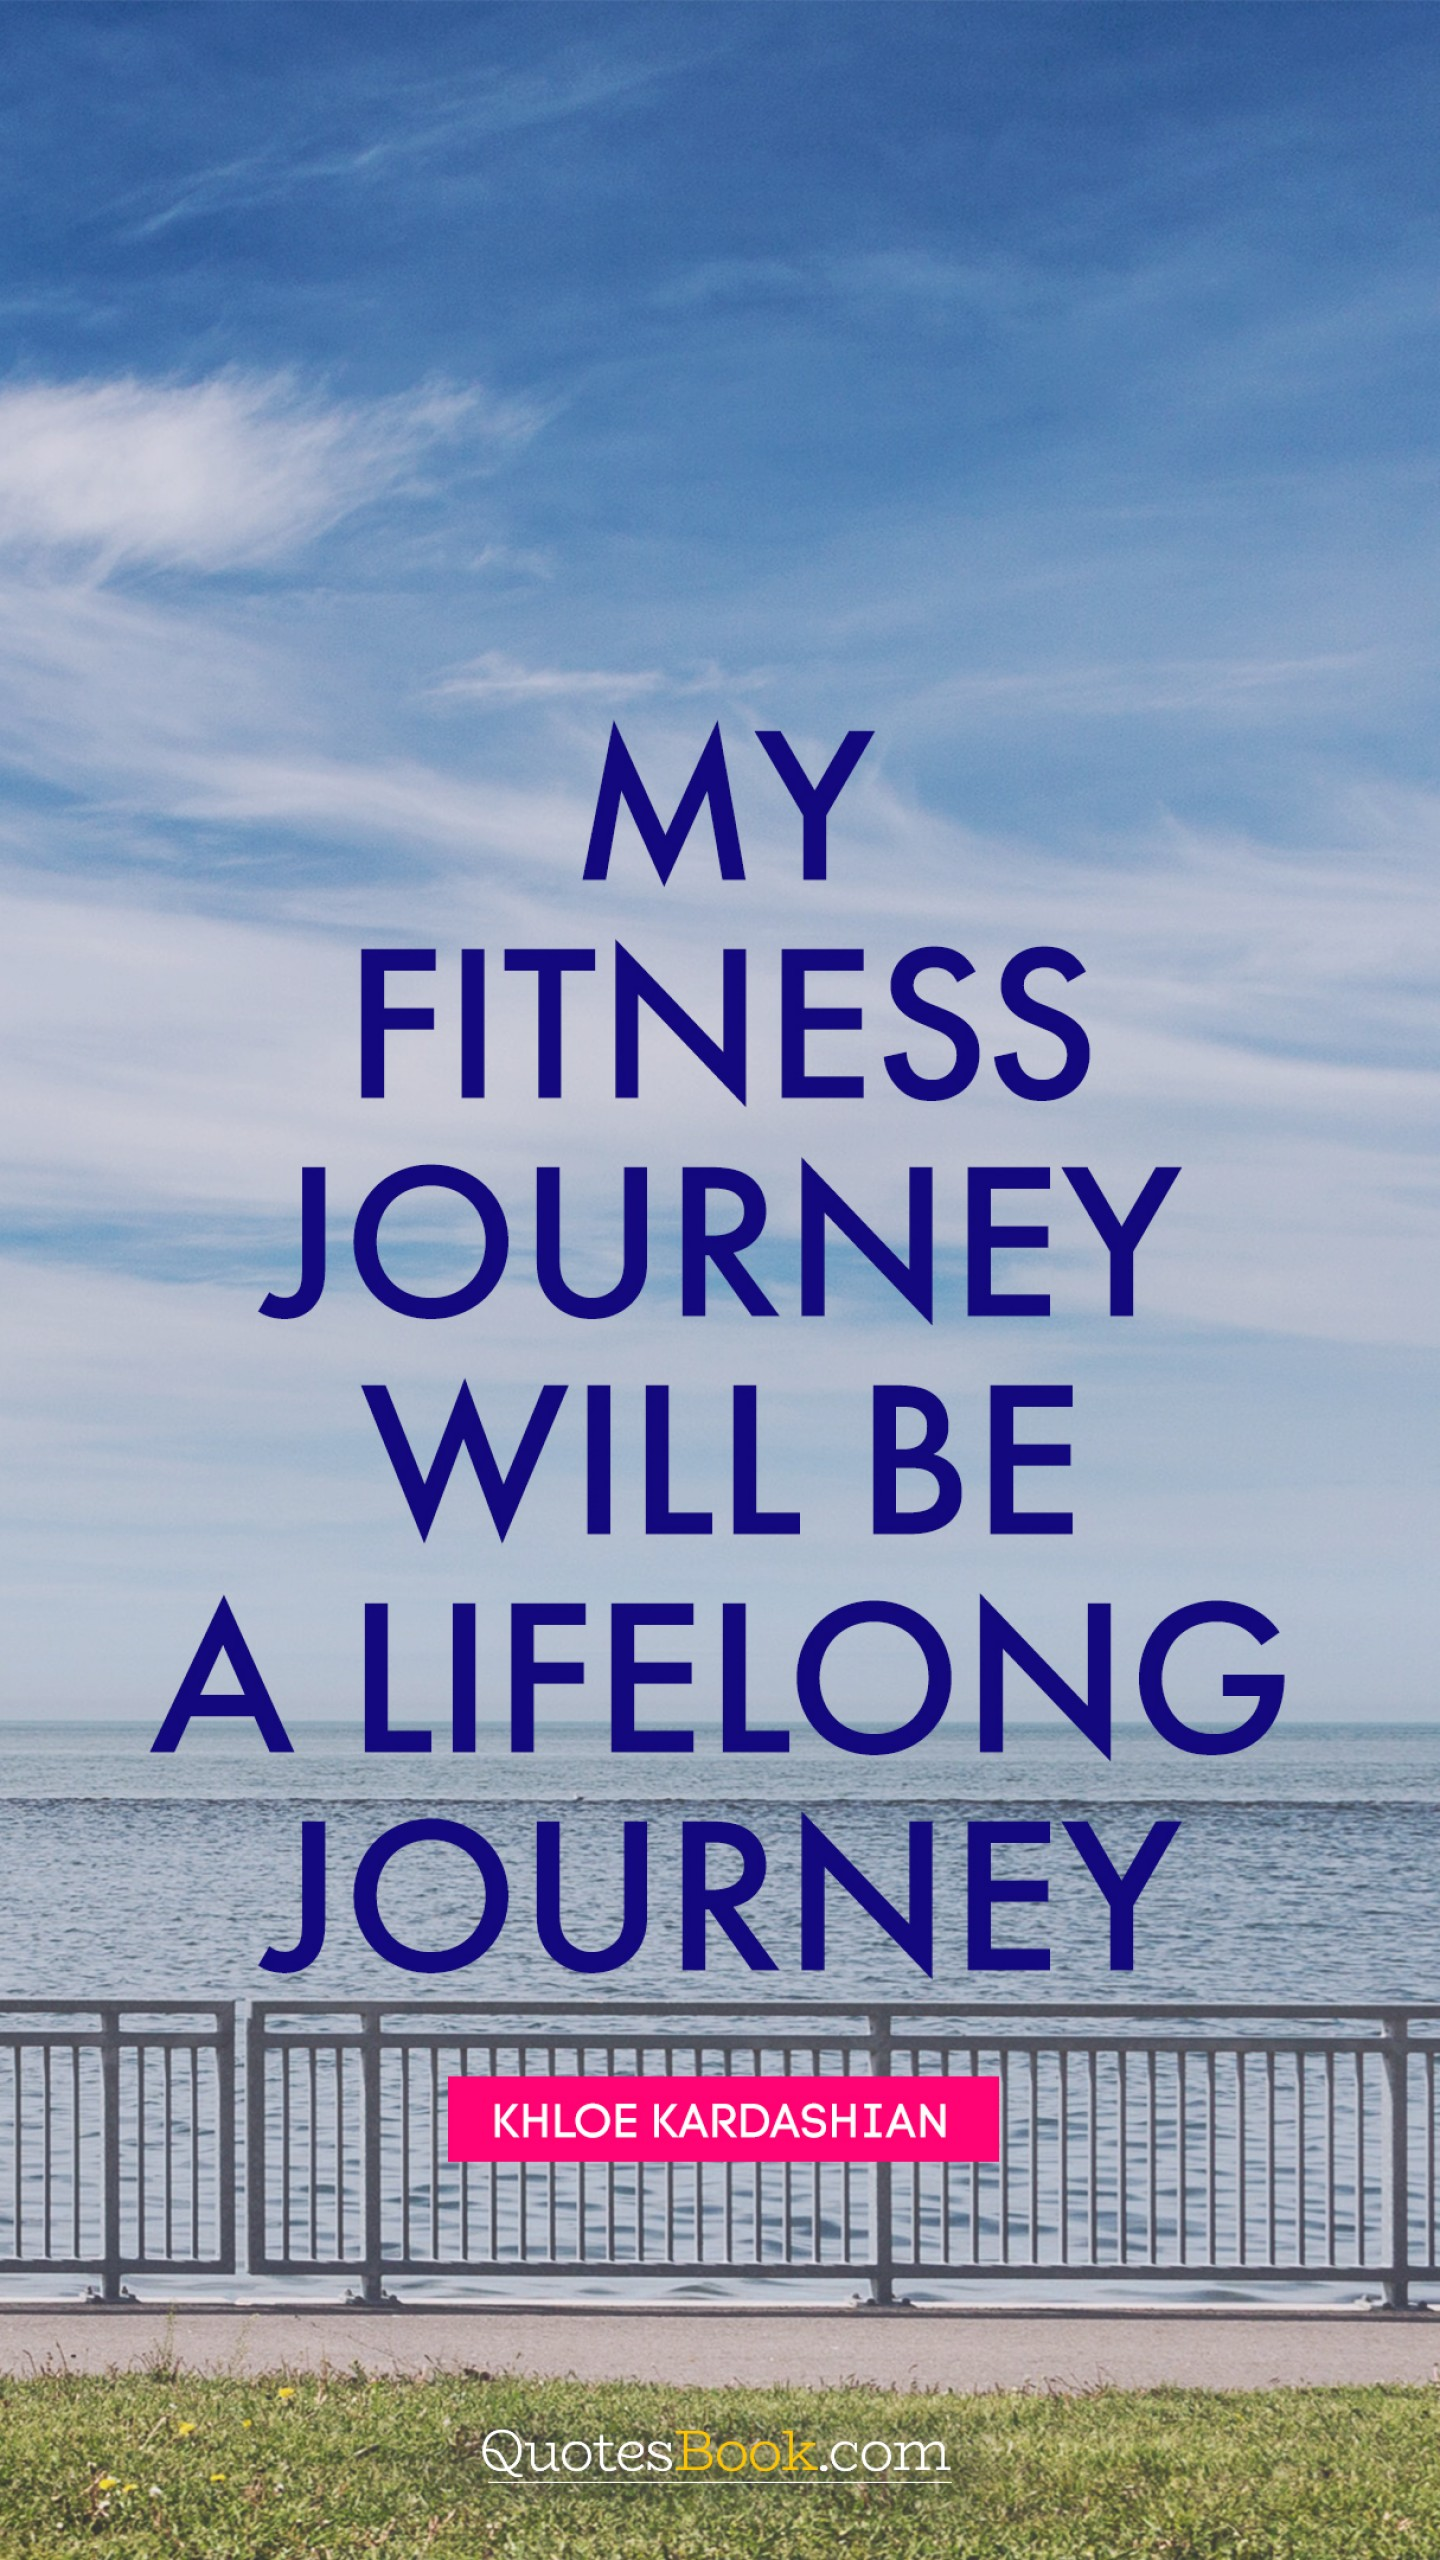 My Fitness Journey Will Be A Lifelong Journey Quote By Khloe Kardashian Page 2 Quotesbook